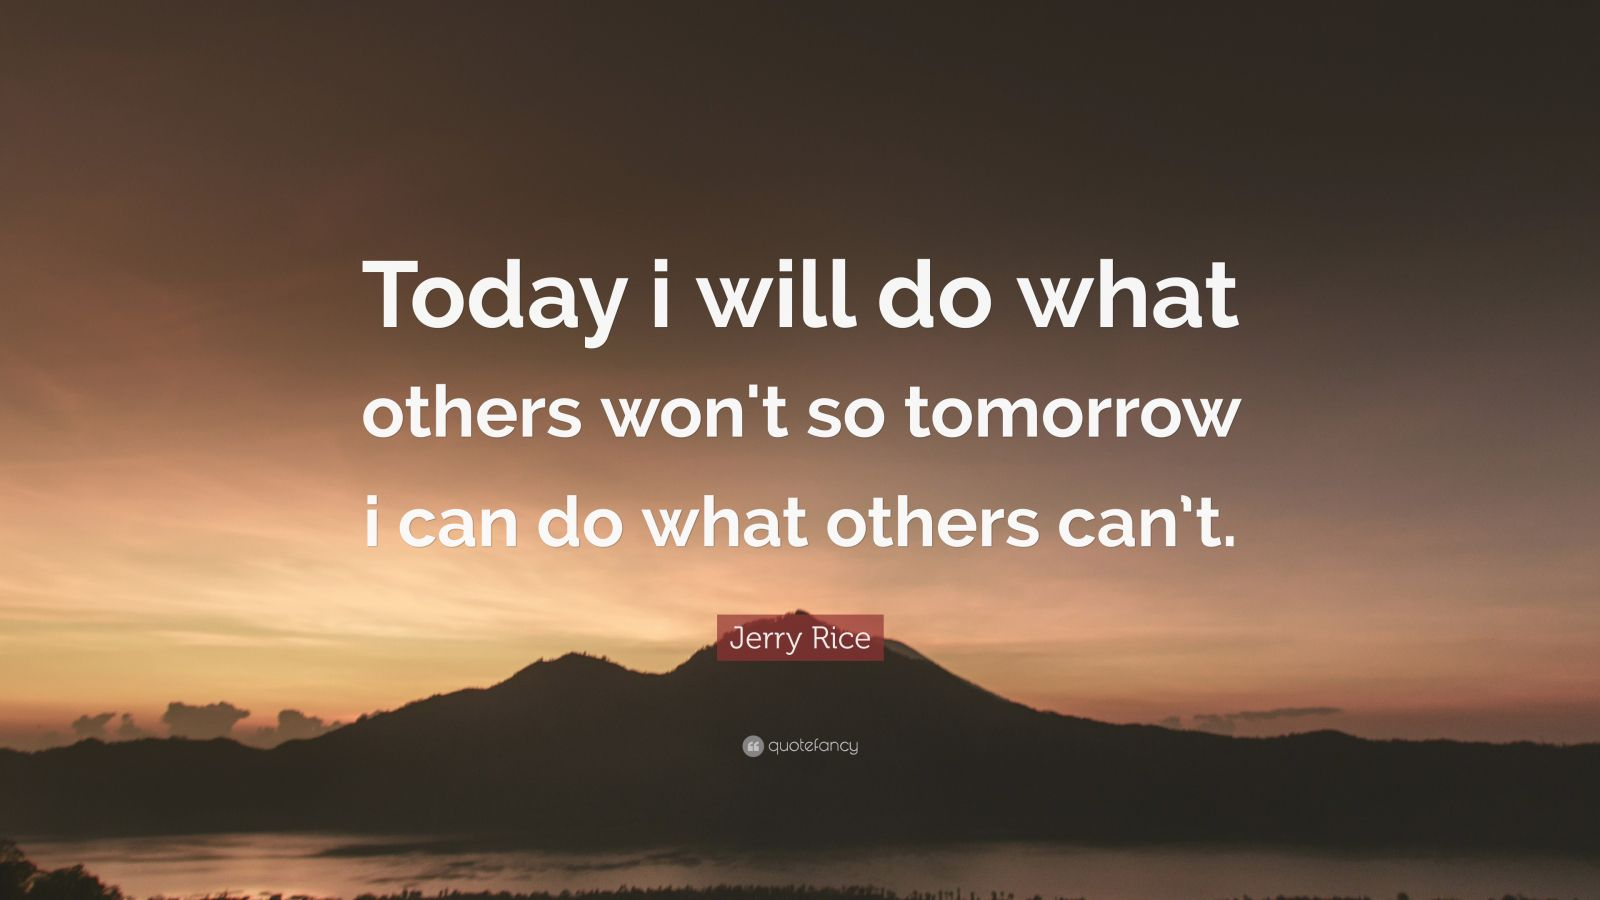 Image Result For Jerry Rice Quotes Wallpaper